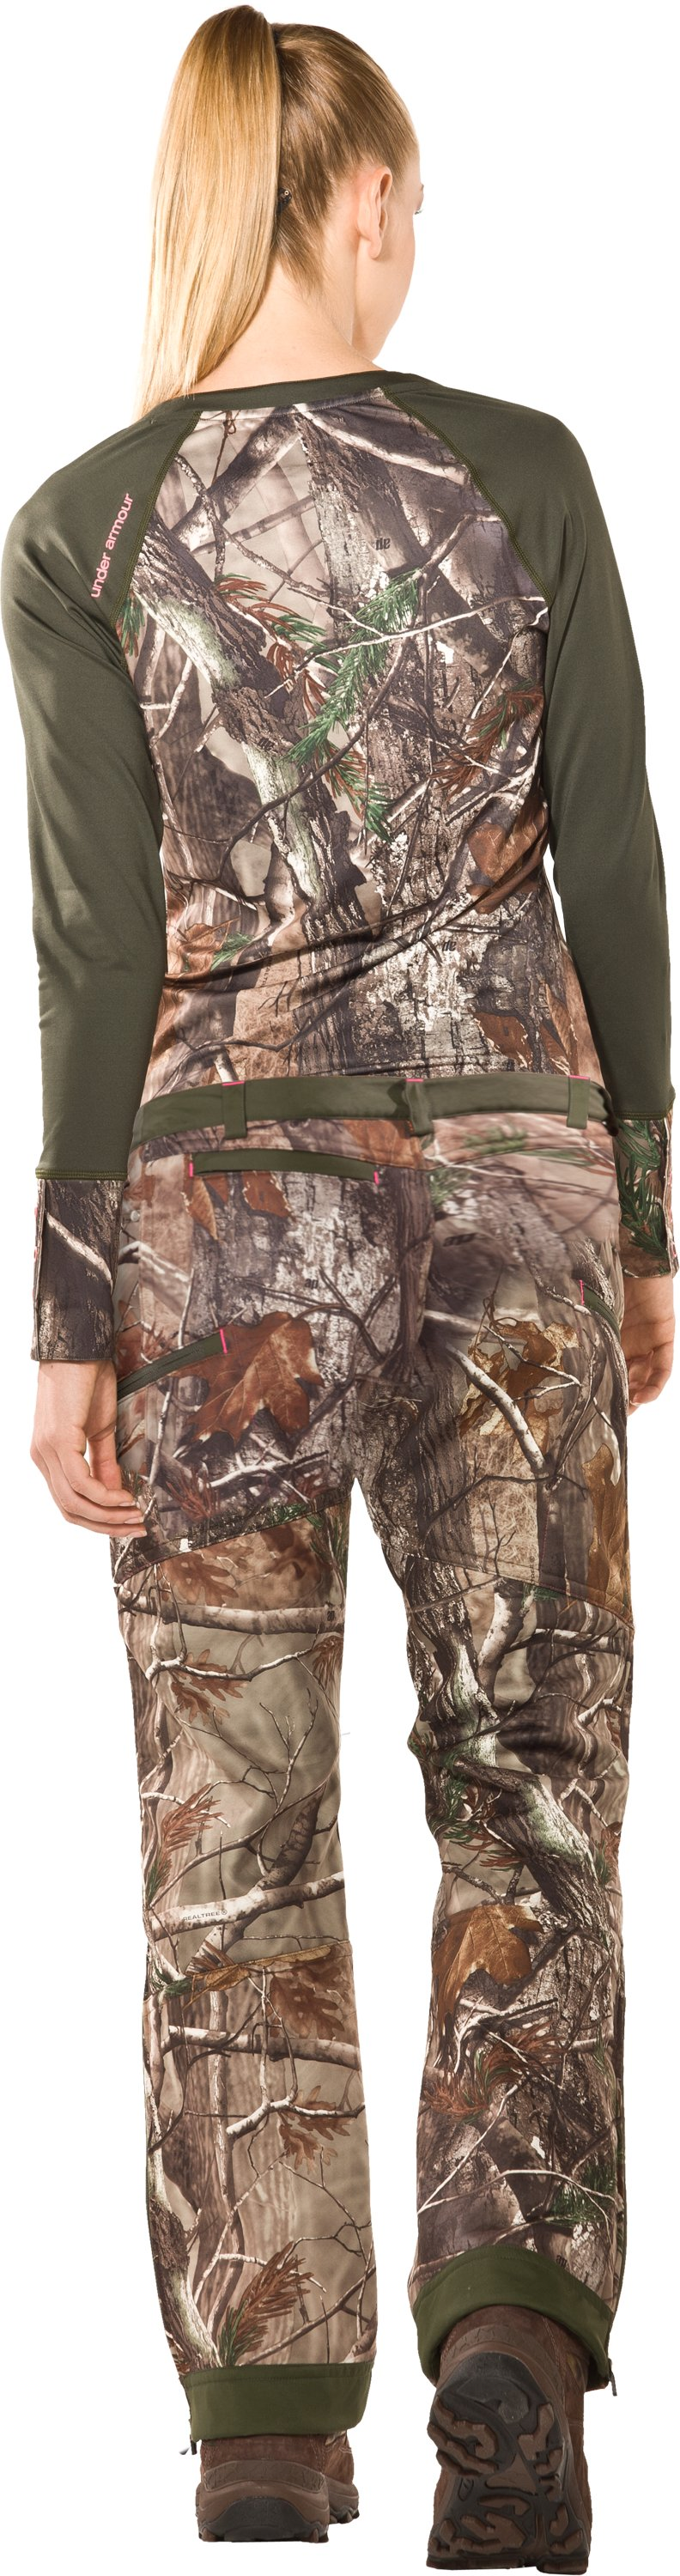 Women's Ridge Reaper® Pants, Realtree AP, Back